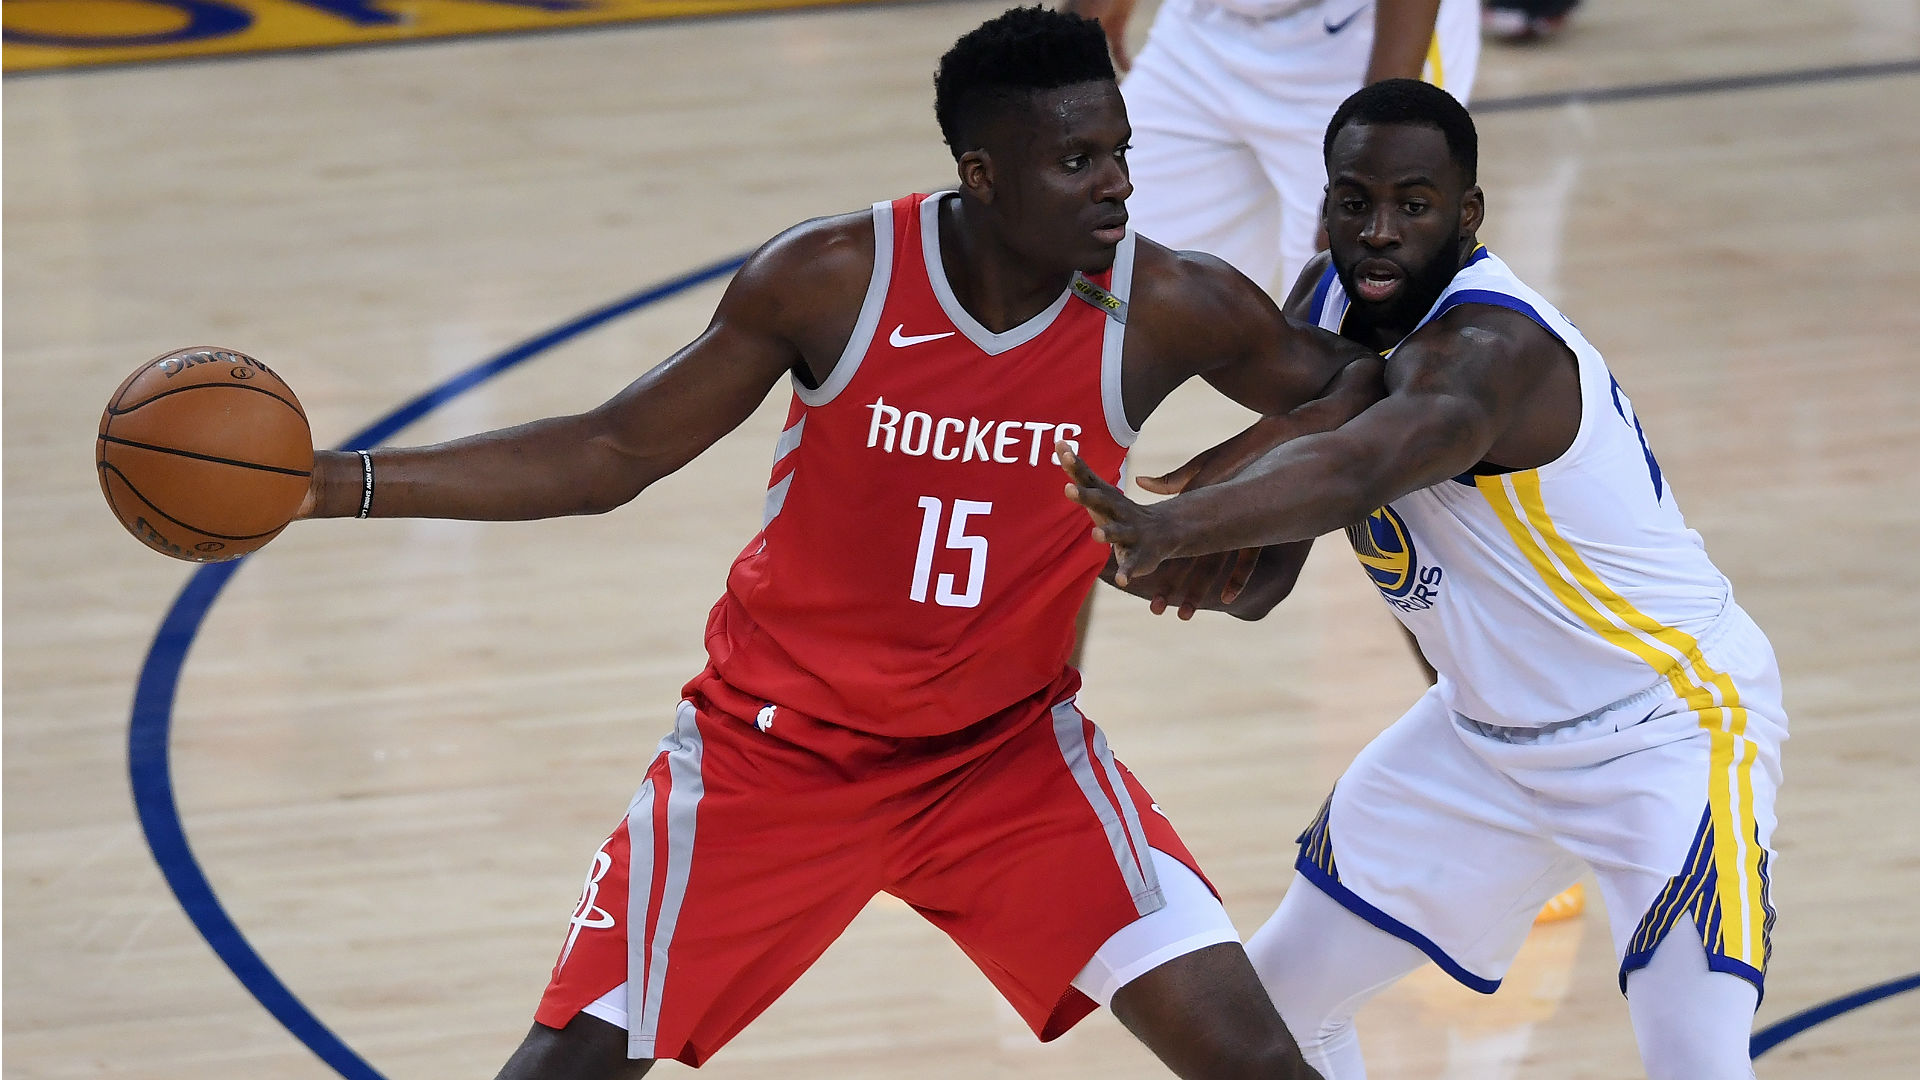 Rockets 'very hopeful' about re-signing restricted free agent Clint Capela | NBA | Sporting News